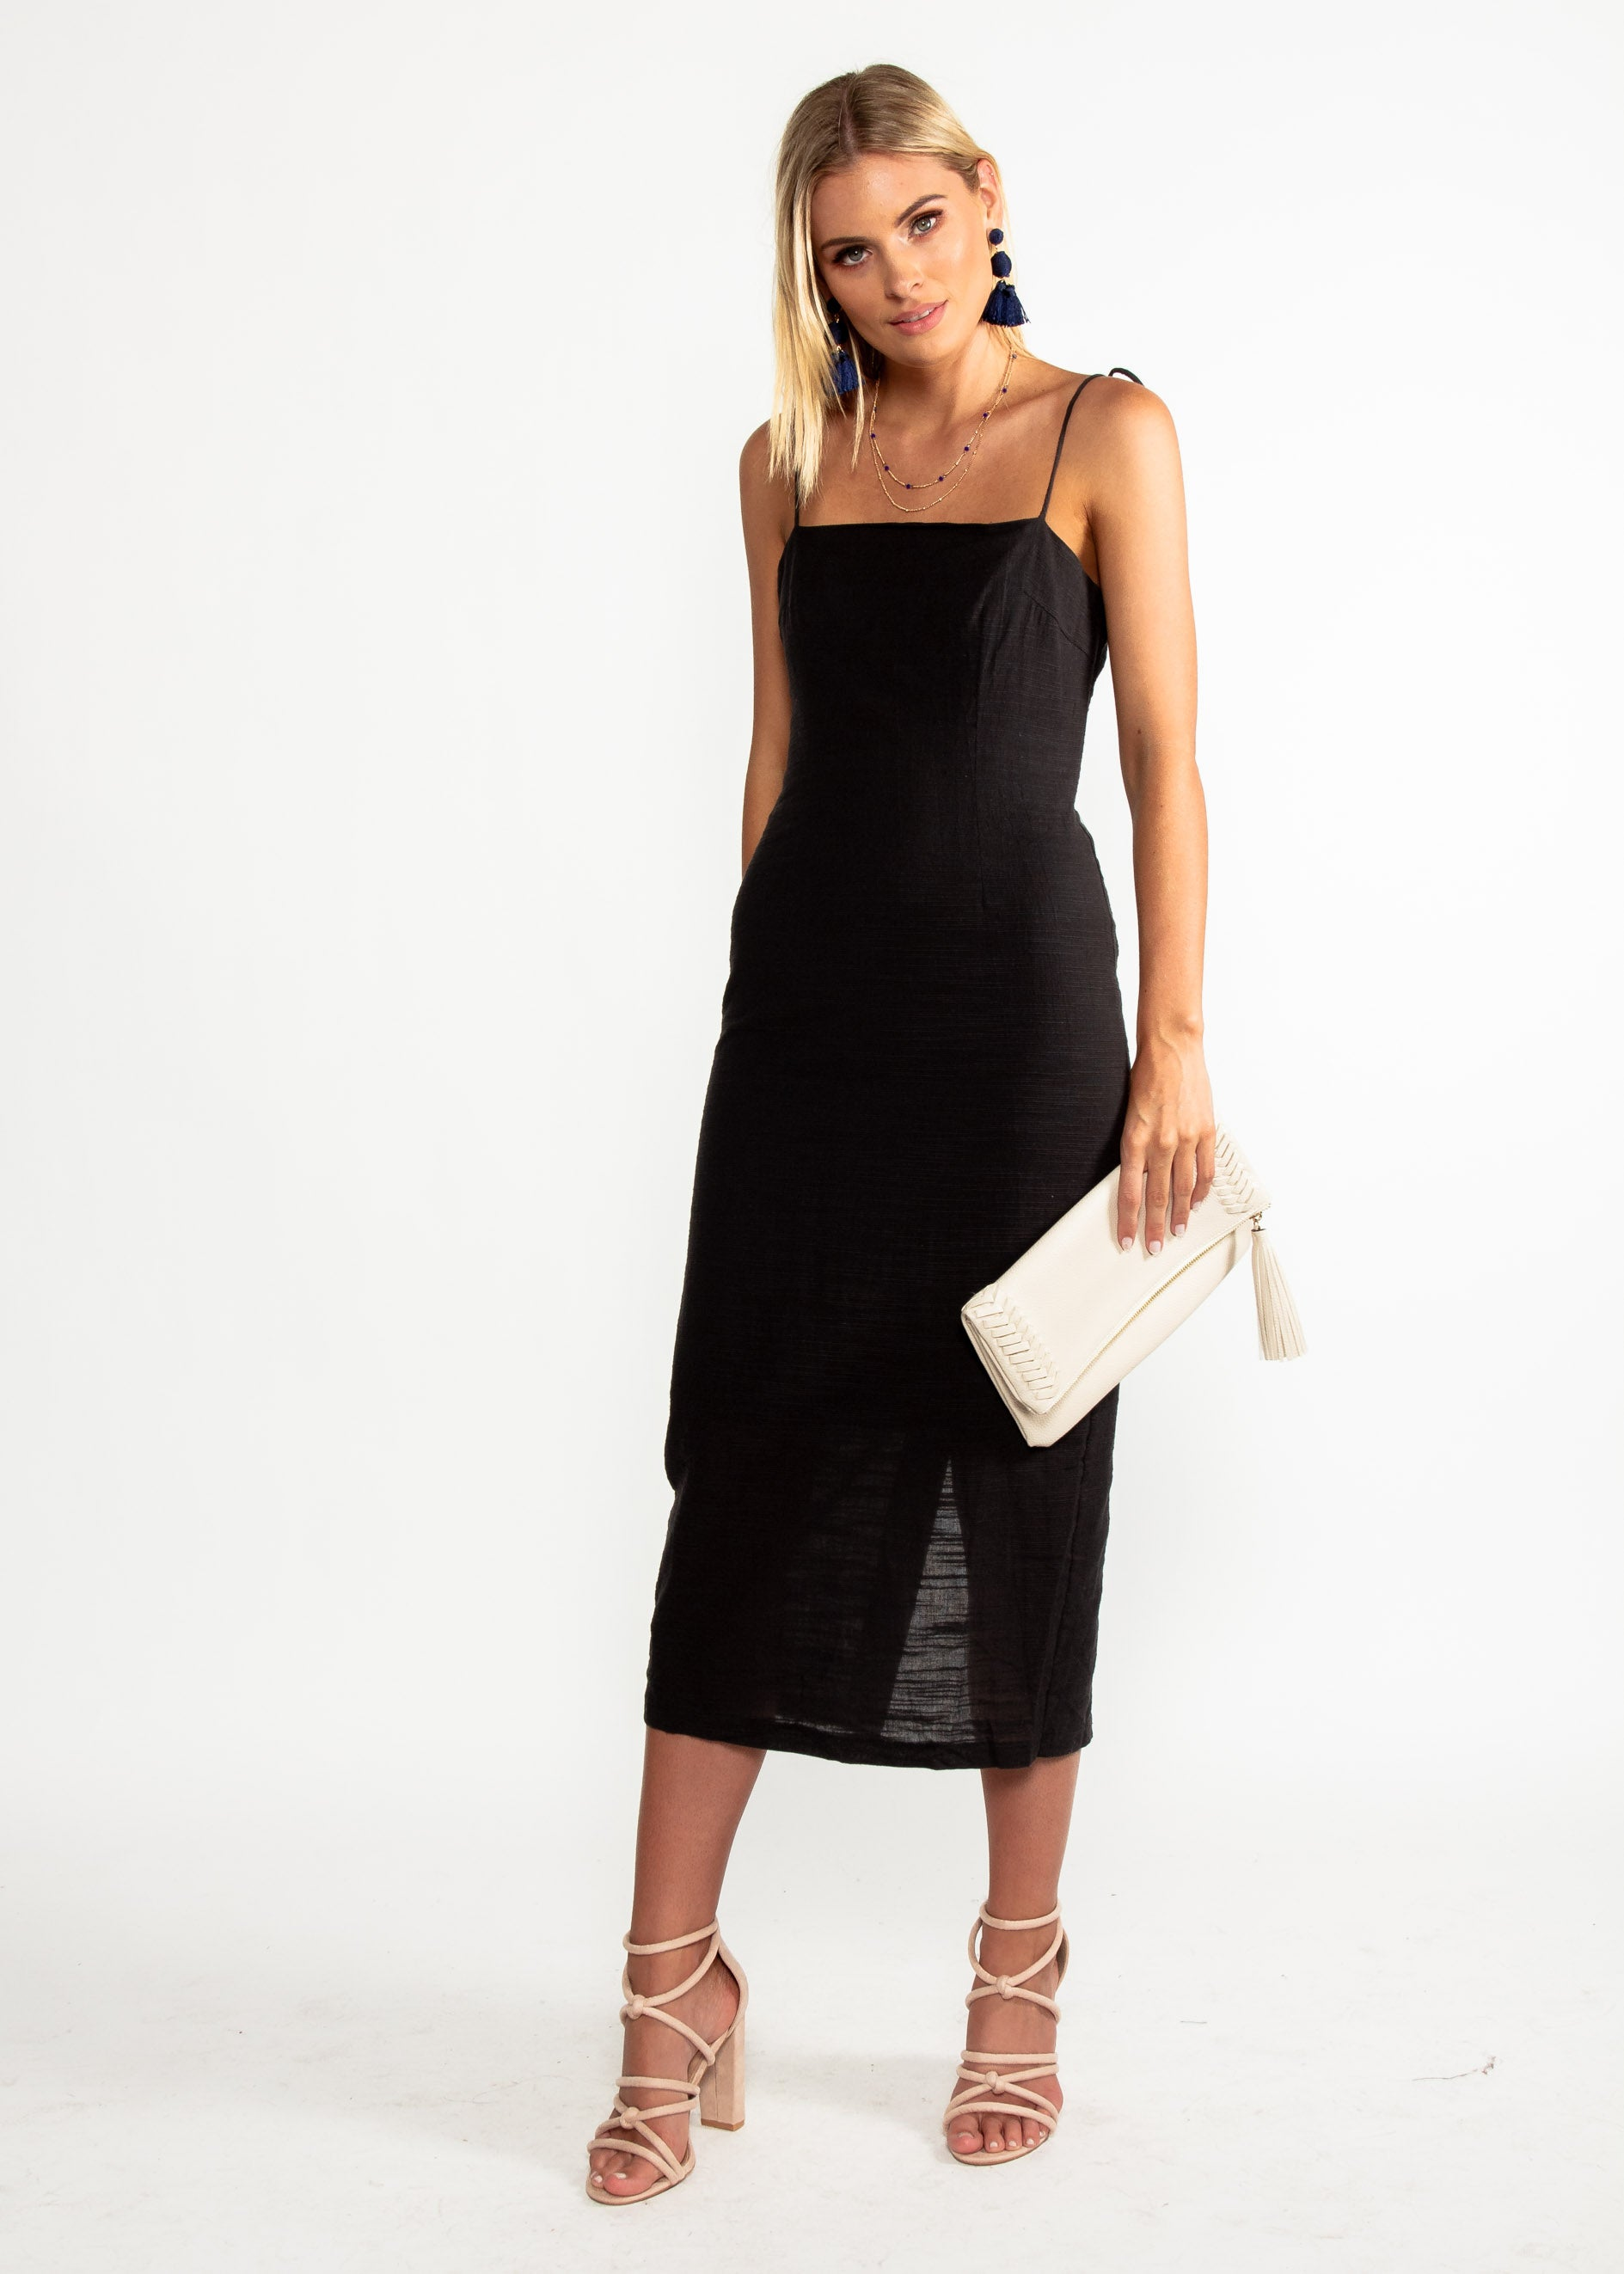 Bound To You Midi Dress - Black